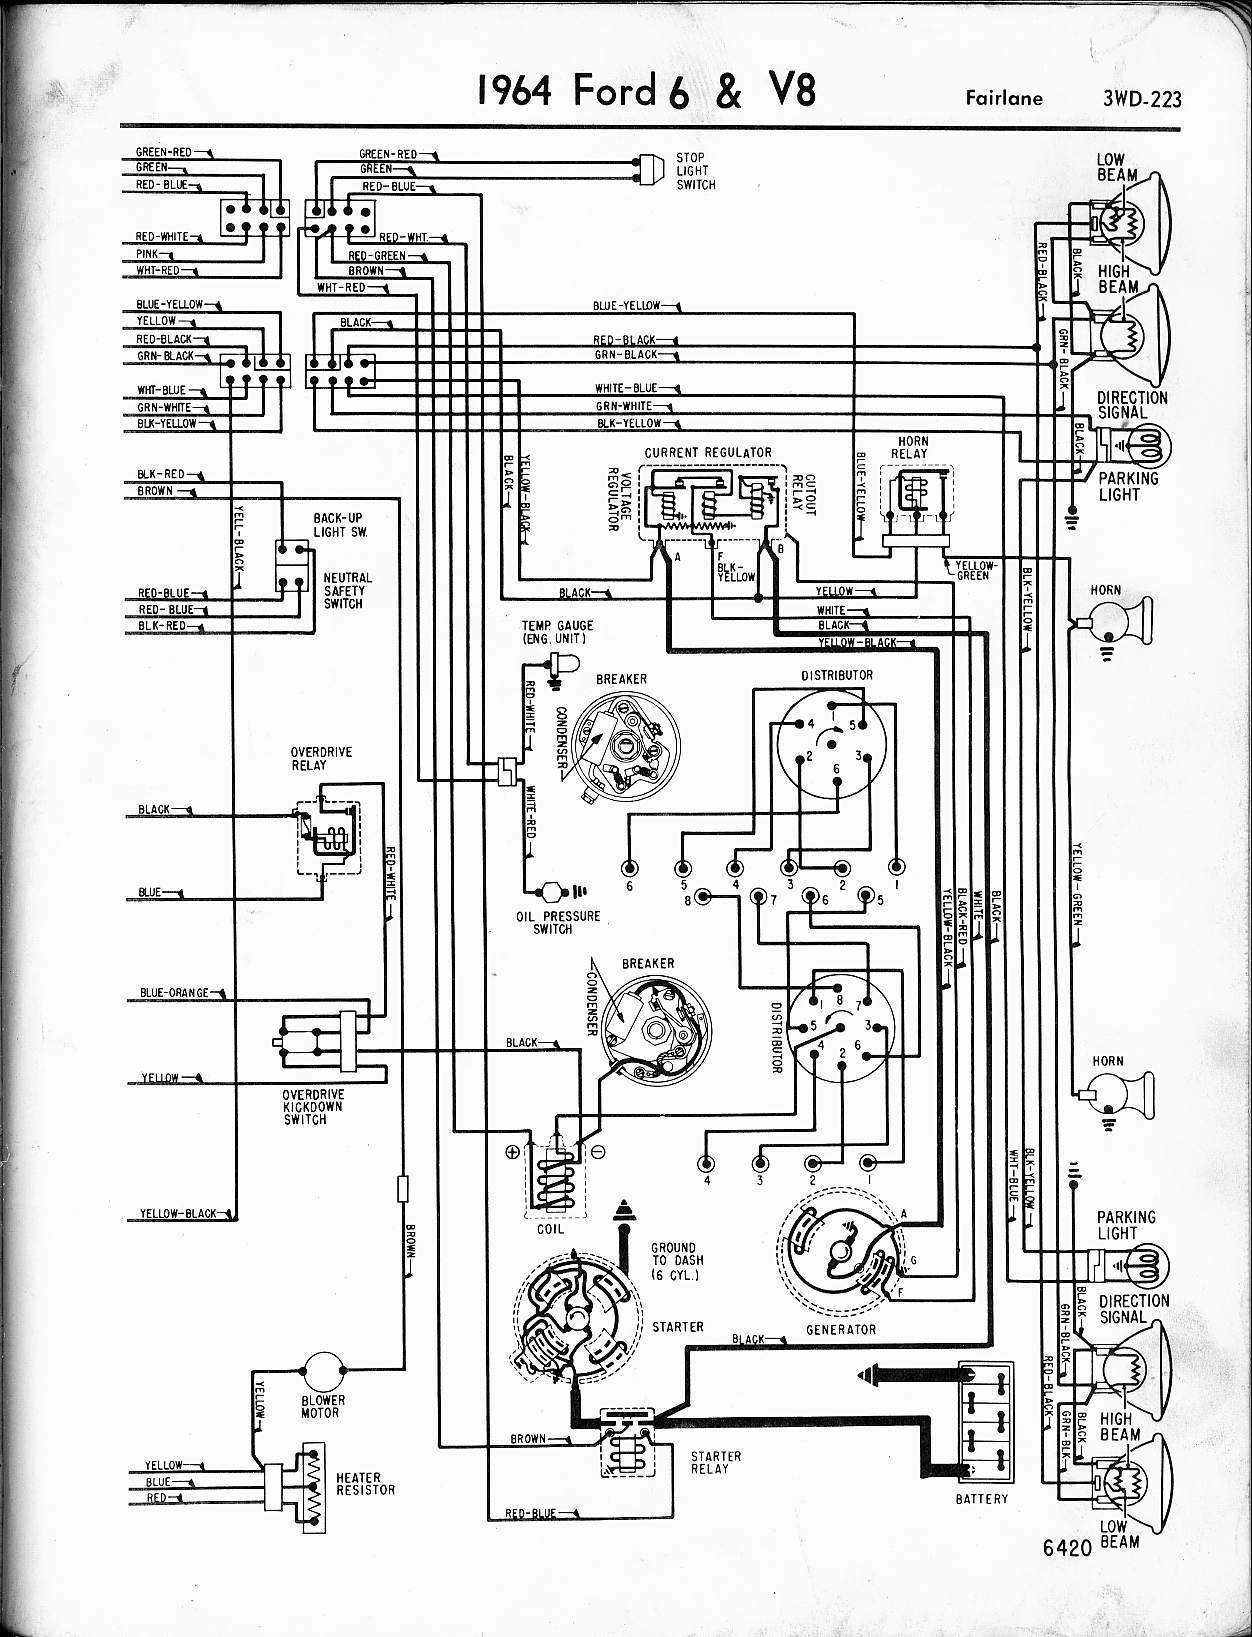 1969 Ford F100 Wiring Diagram Detailed Schematics Black 1966 F 100 Coil Diagrams U2022 Ignition